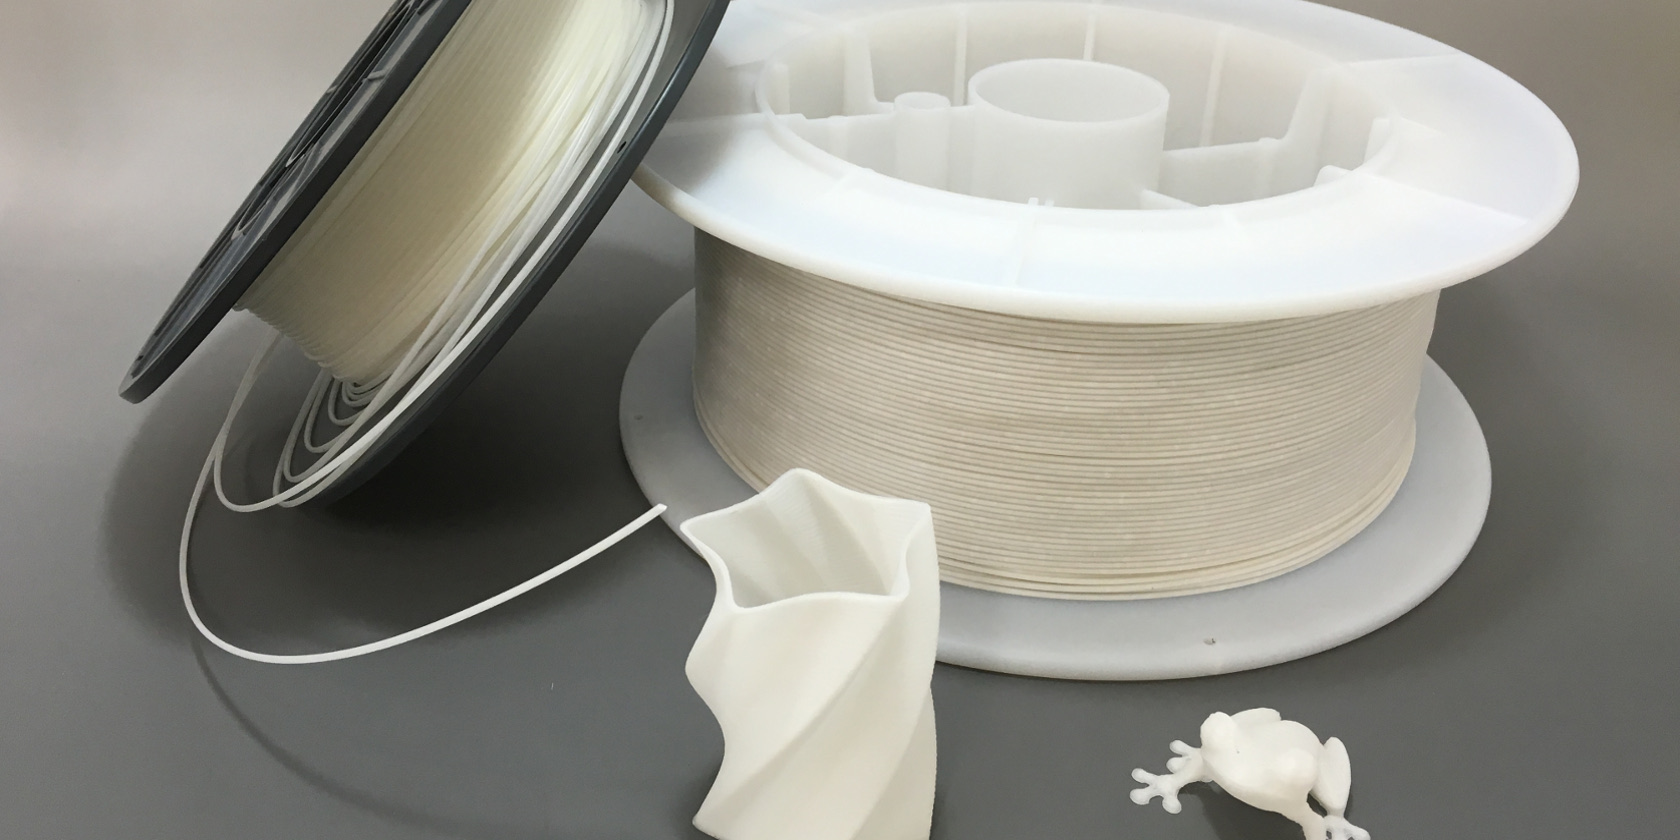 D Printing Exhibition Tokyo : Tokyo printing ink develops pp filament for d printers